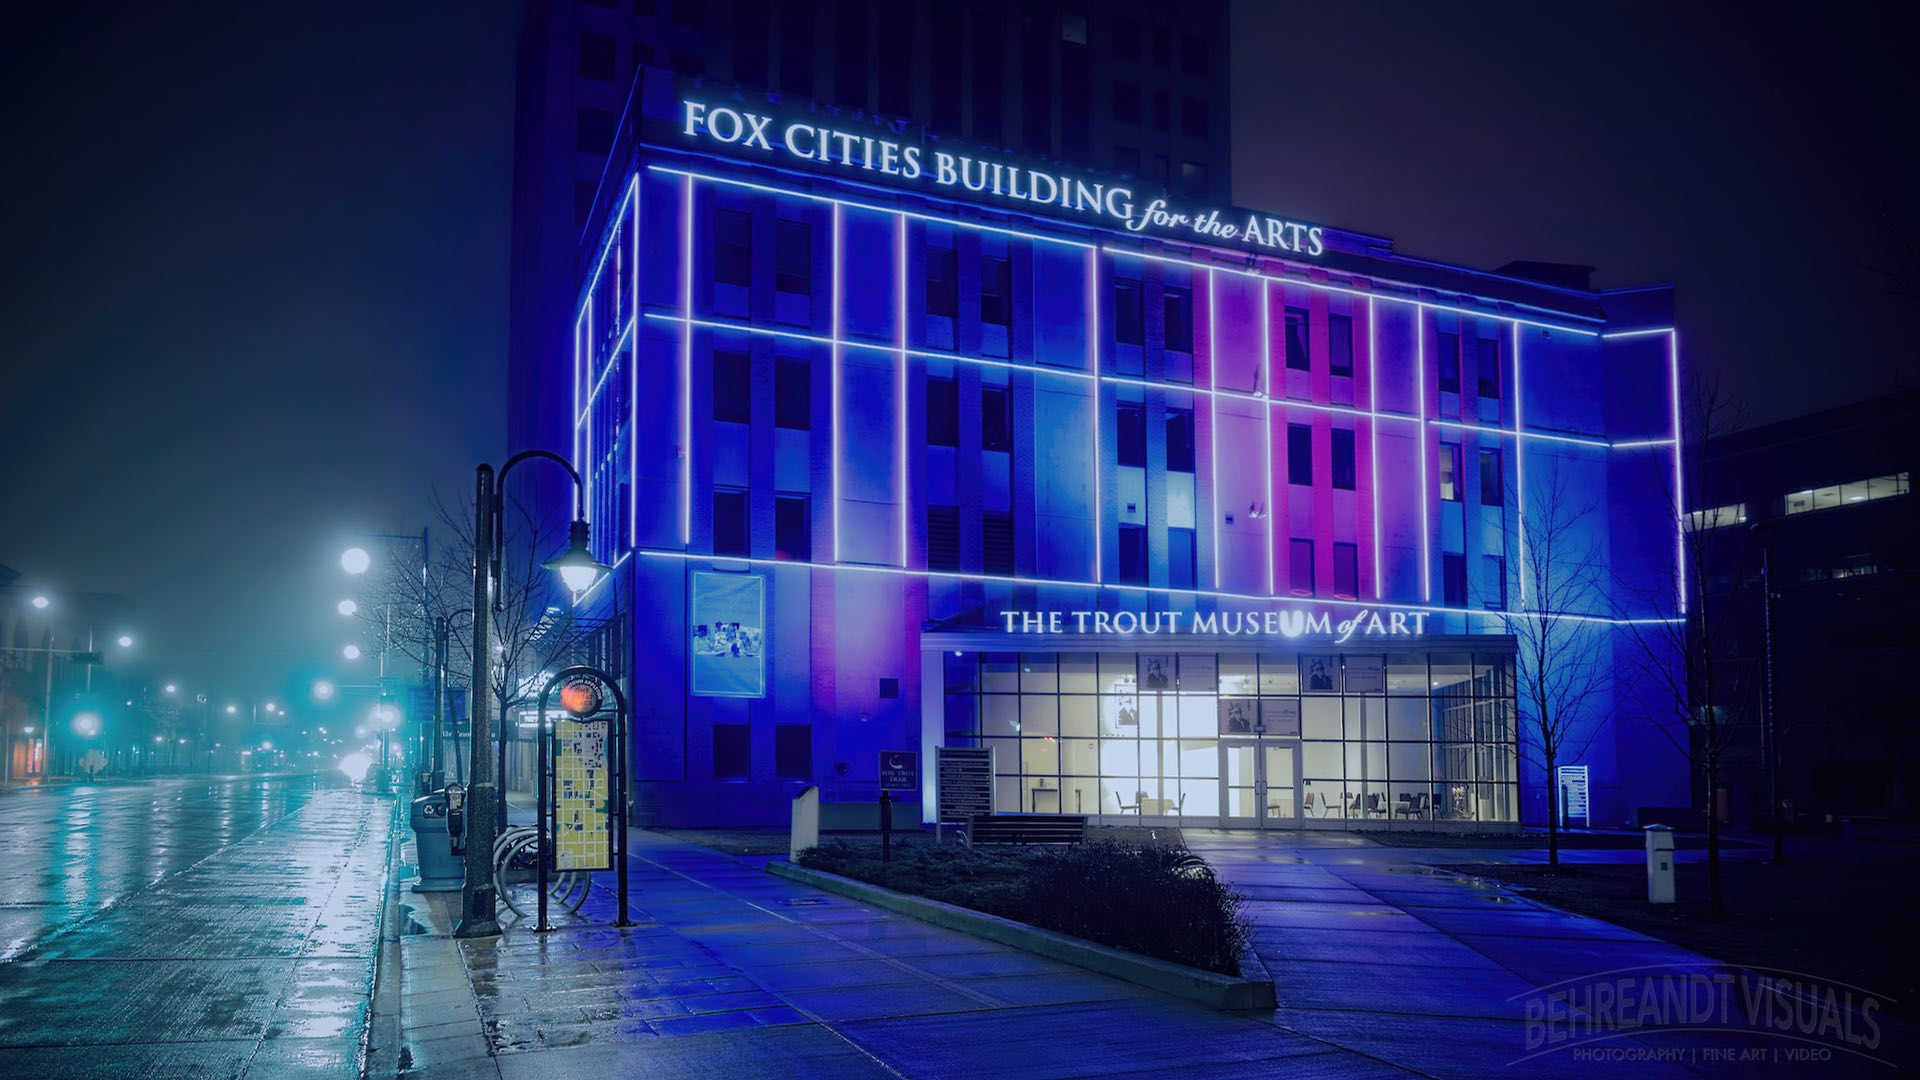 The Fox Cities Building for the Arts, home of the Trout Museum in Appleton, Wisconsin.